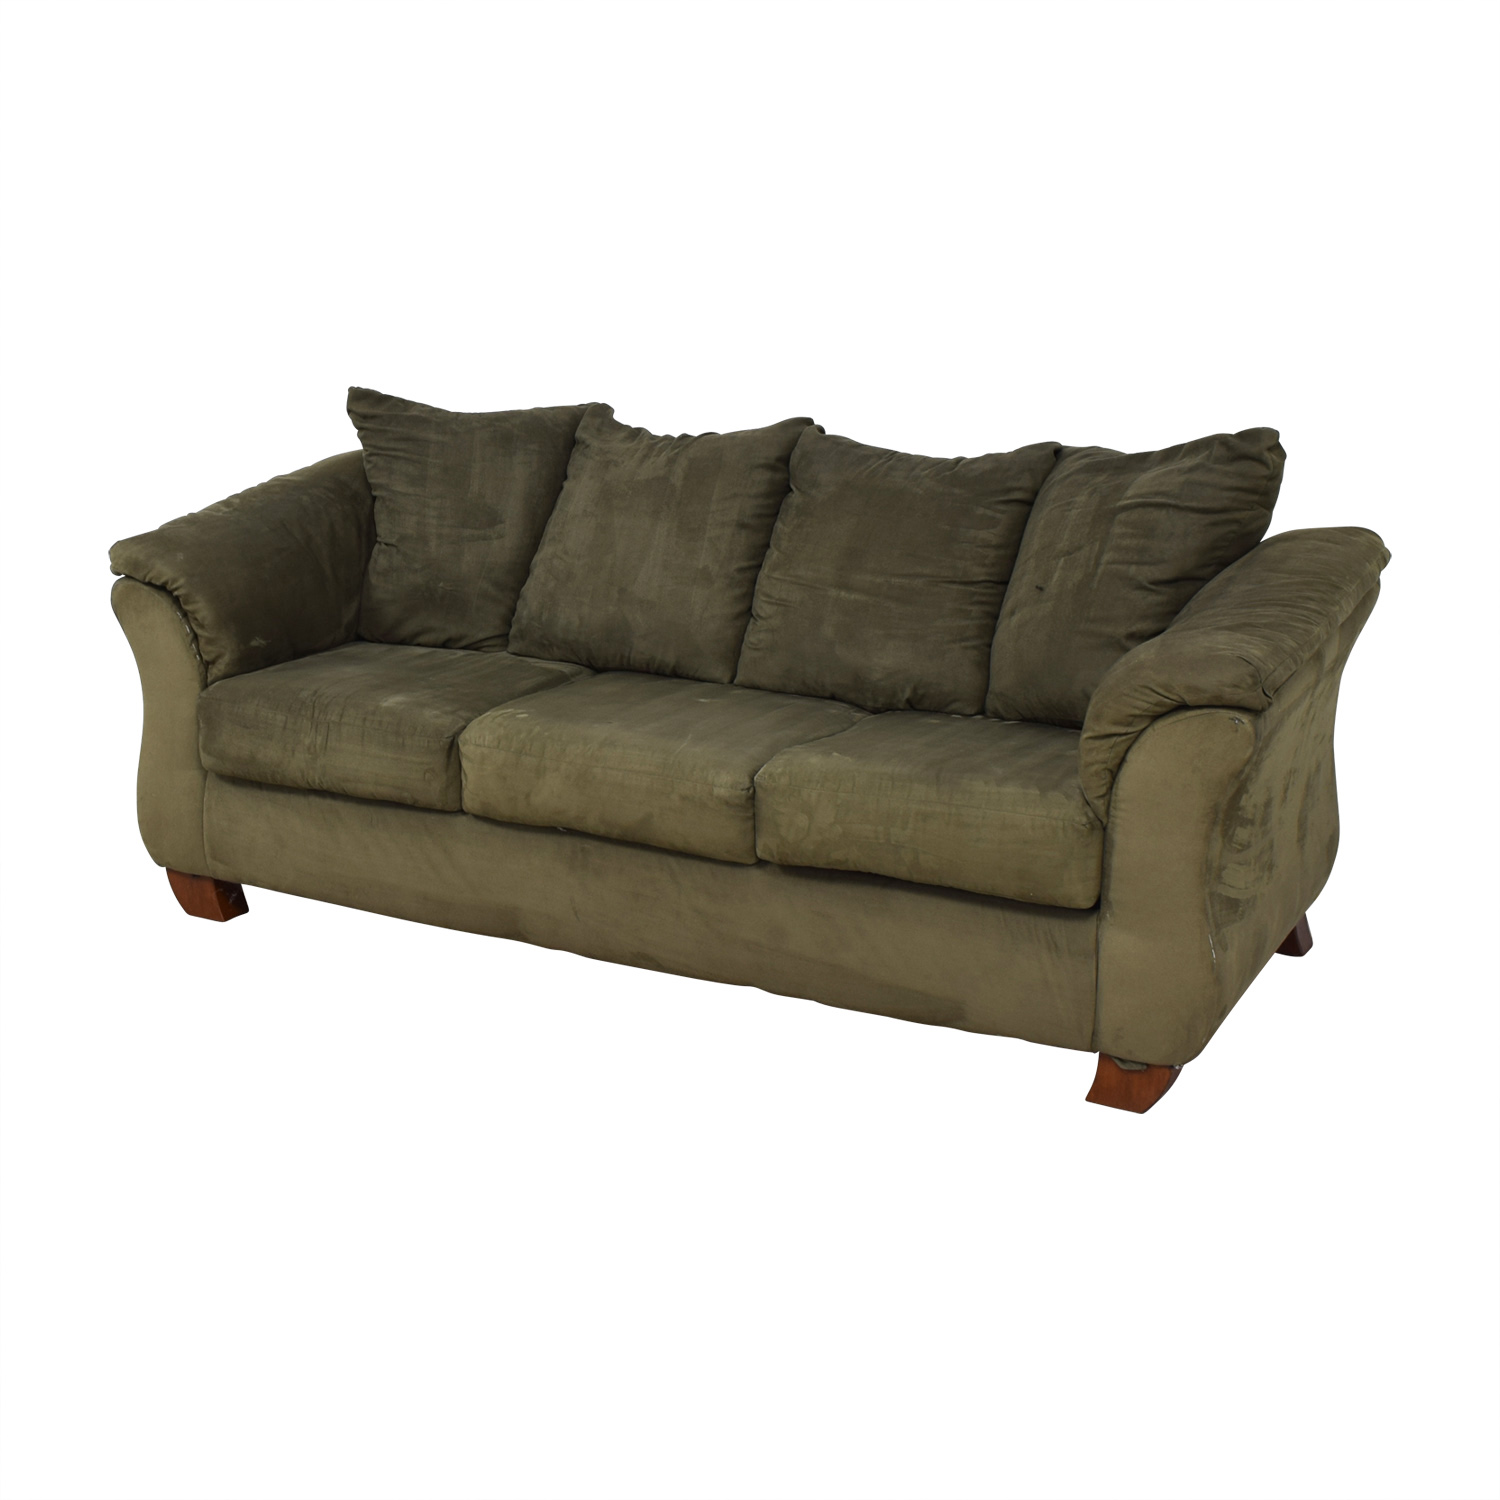 Ashley Furniture Forest Green Three-Cushion Couch sale